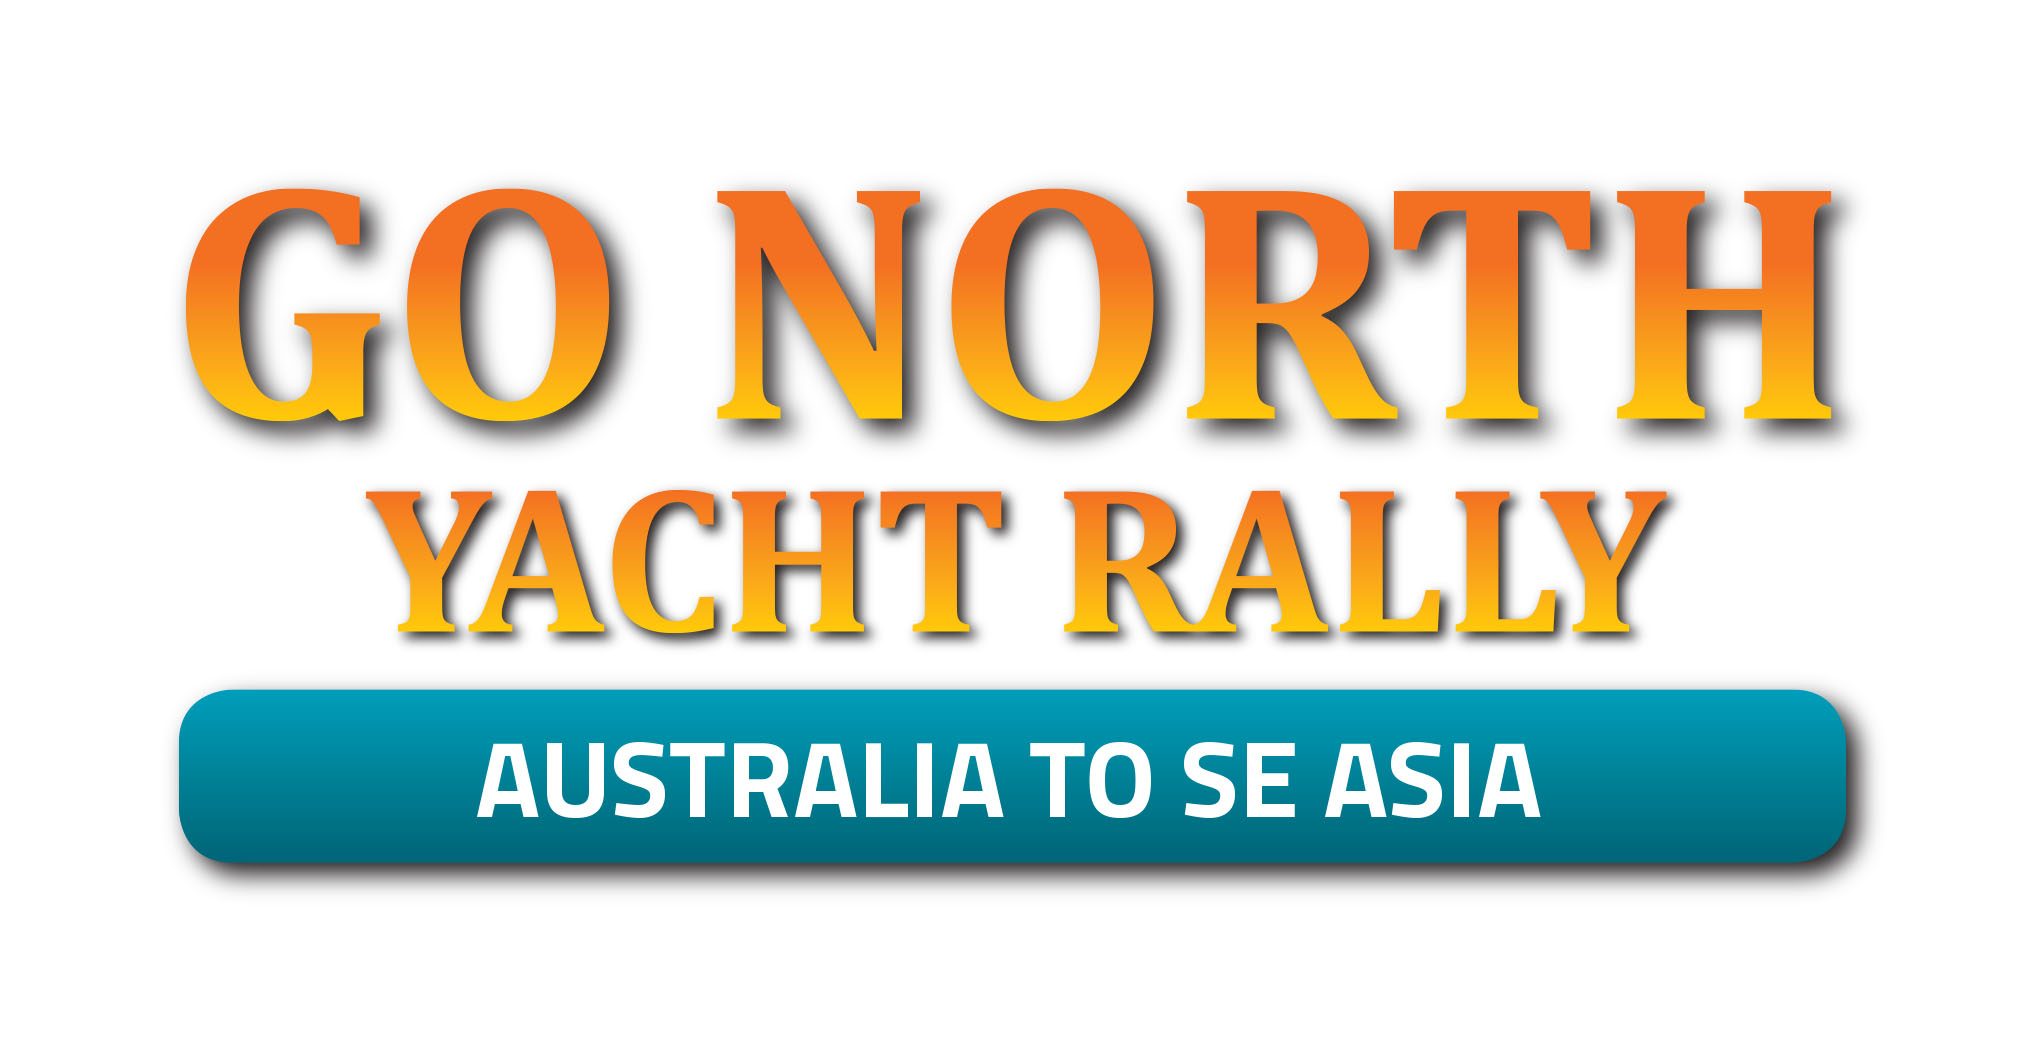 Australia to Indonesia - Details about the ALL NEW Go North Rally route and rally destination will be made available very soon.